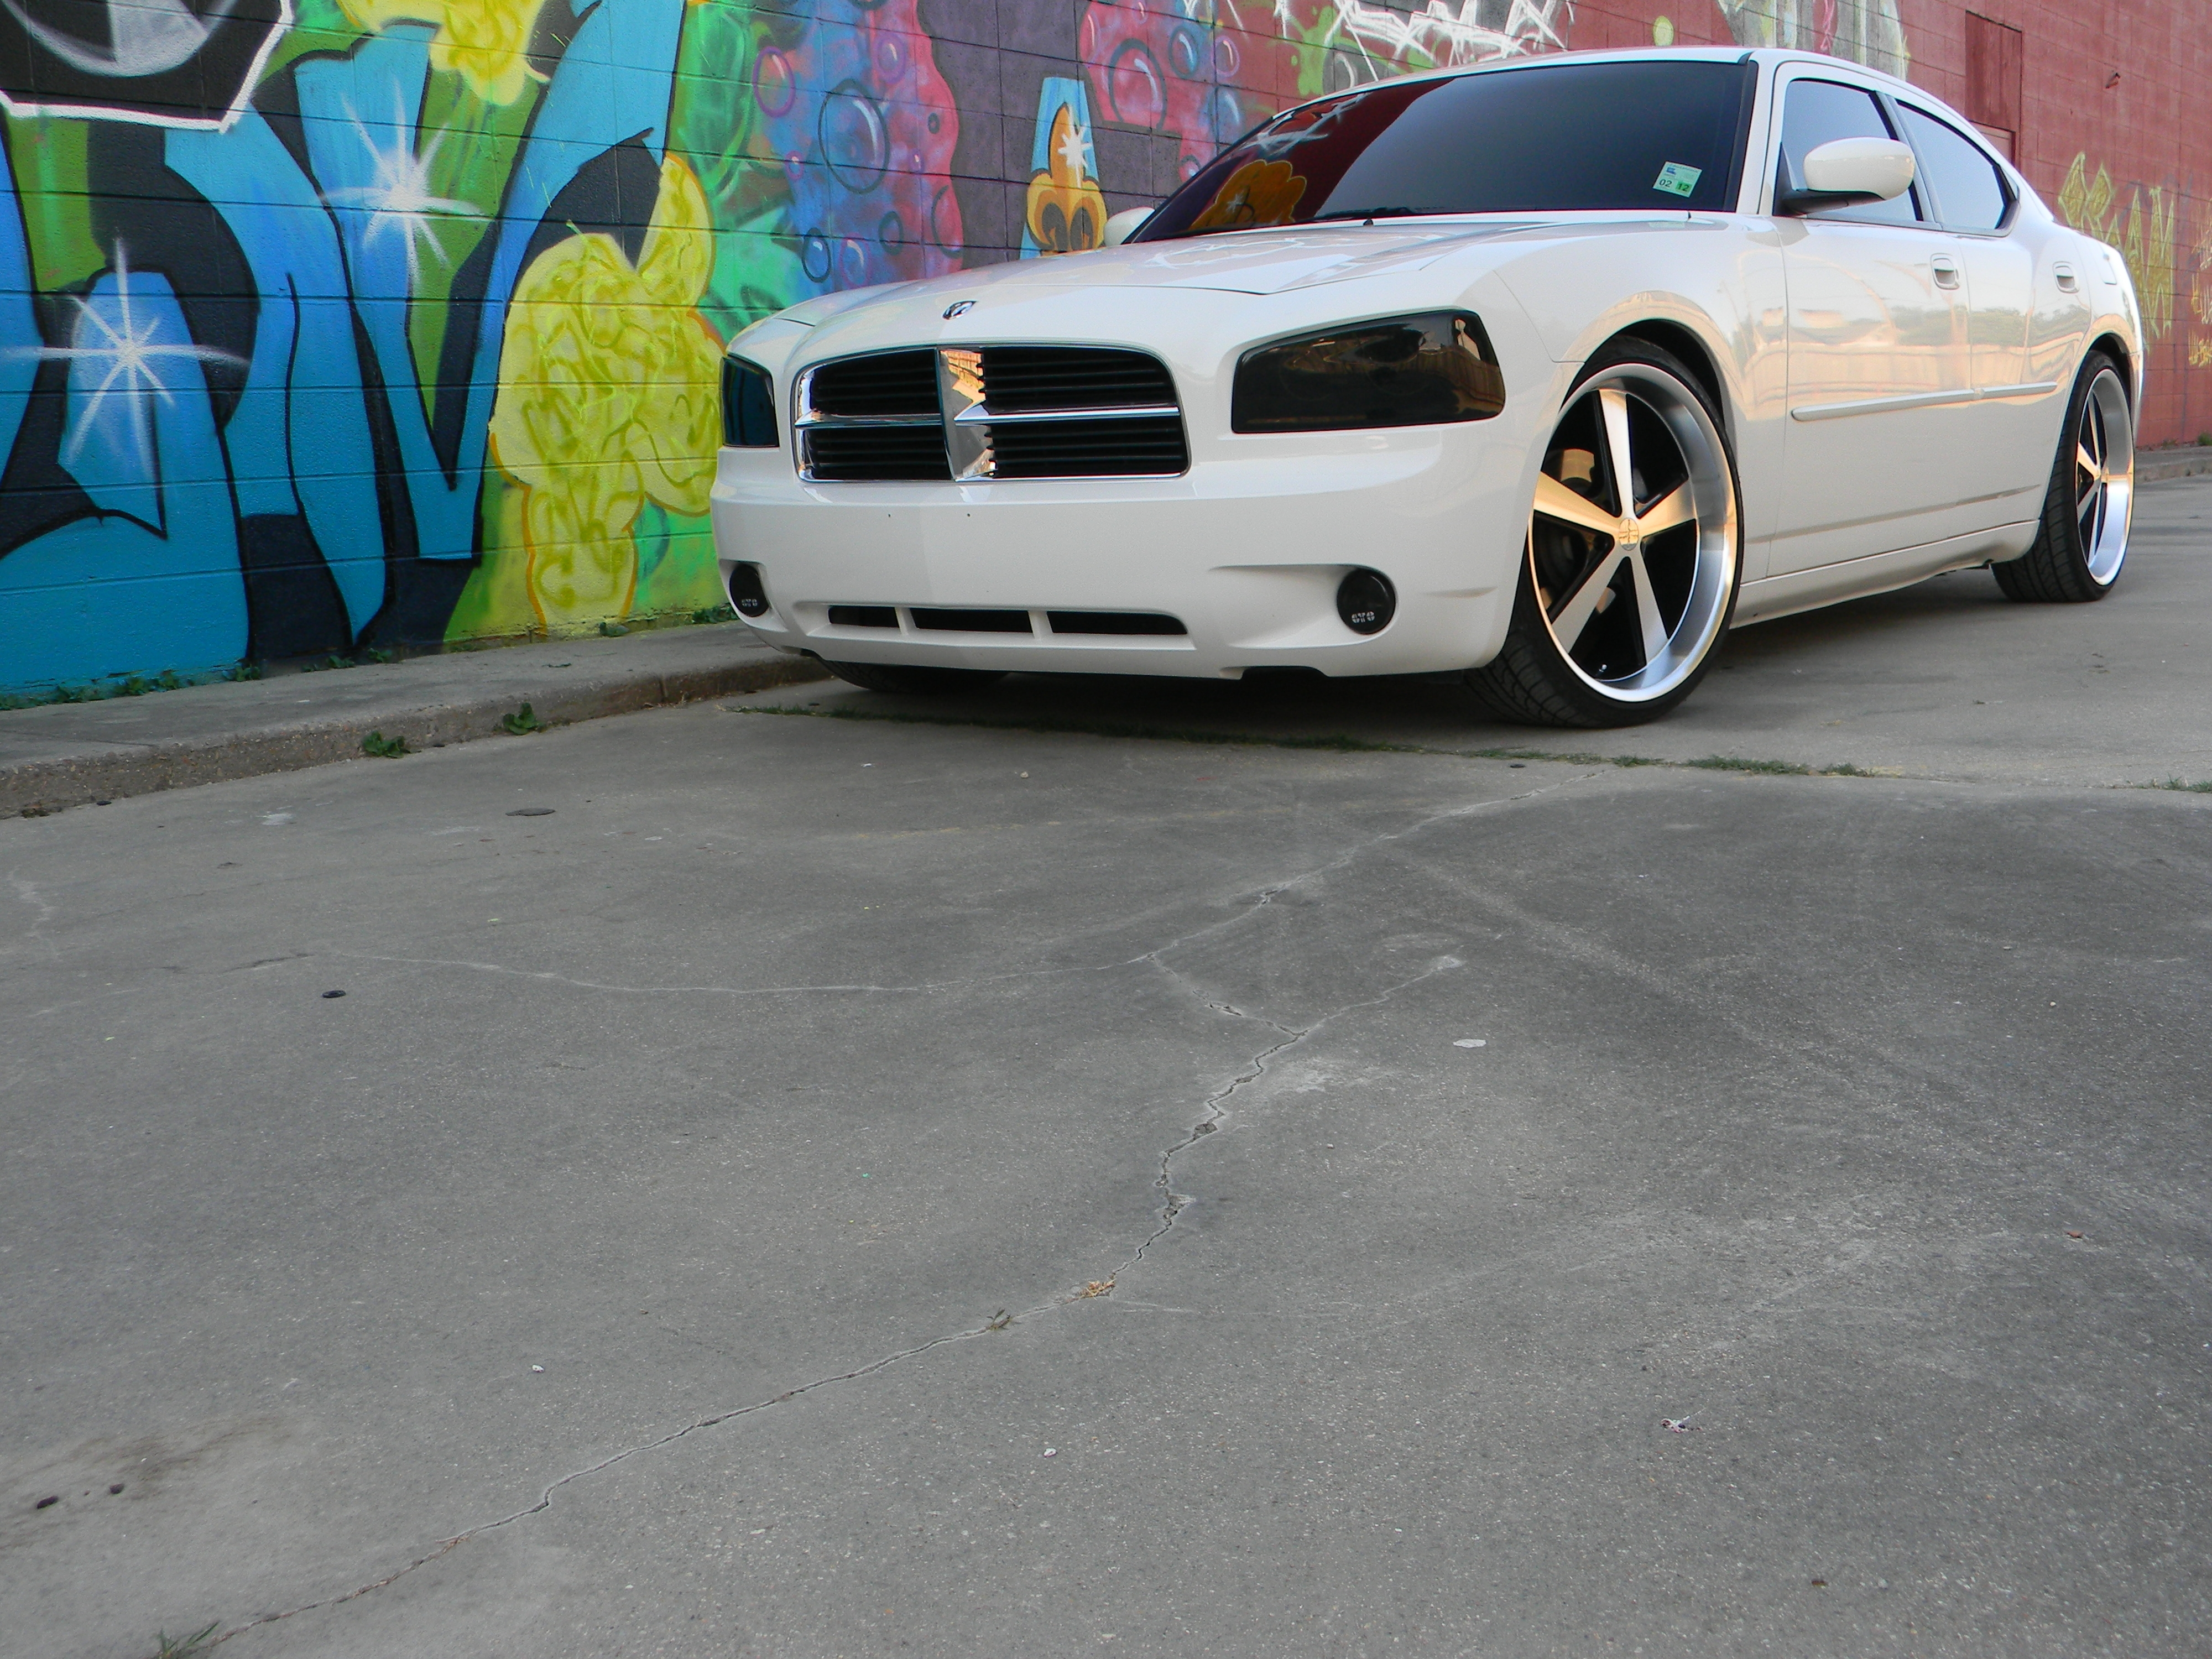 Smith2010 2010 Dodge Charger 15166373